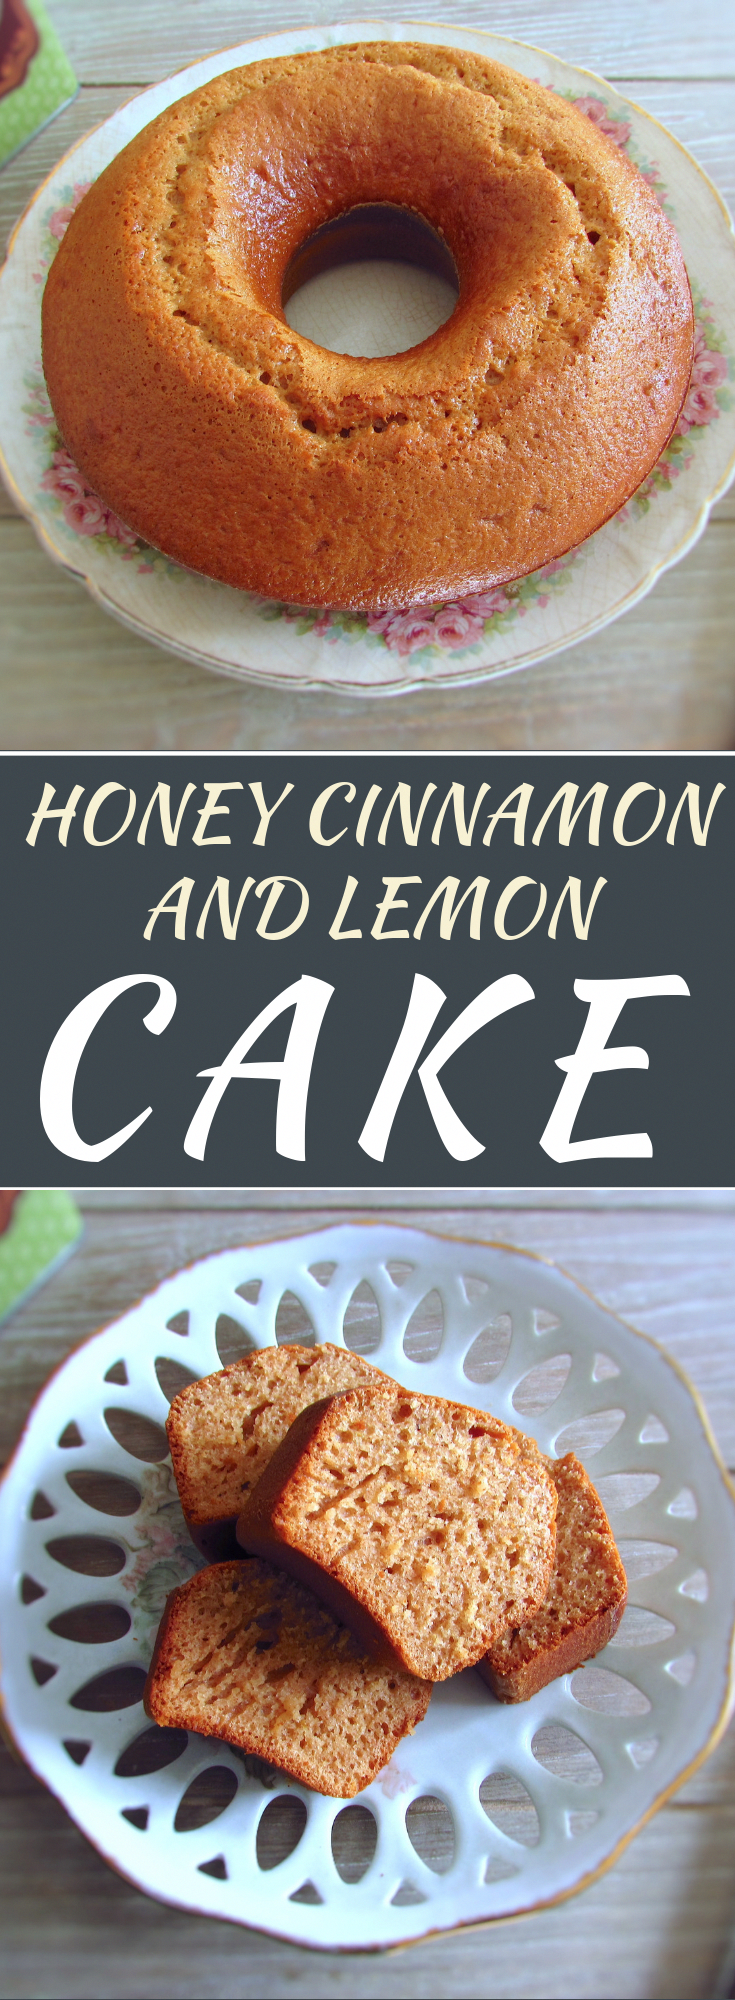 Honey cinnamon and lemon cake | Food From Portugal. Drink a hot chocolate on a winter afternoon ser